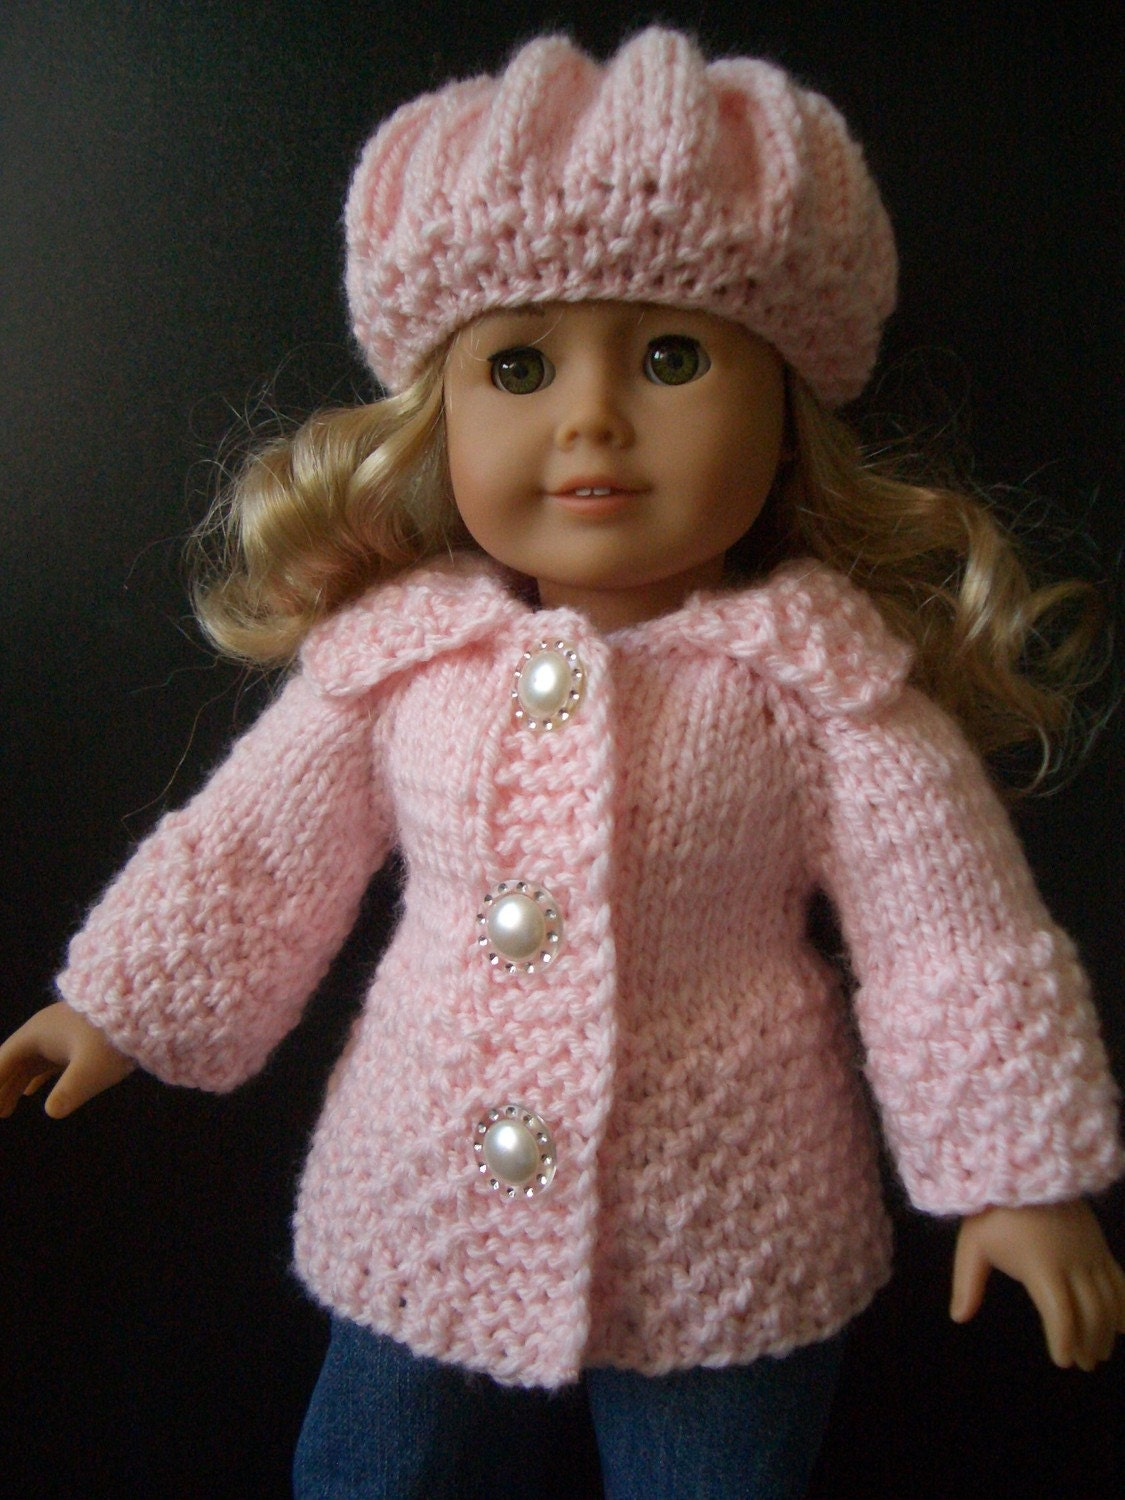 Knitting Pattern with VIDEO for AMERICAN GIRL 18 inch doll